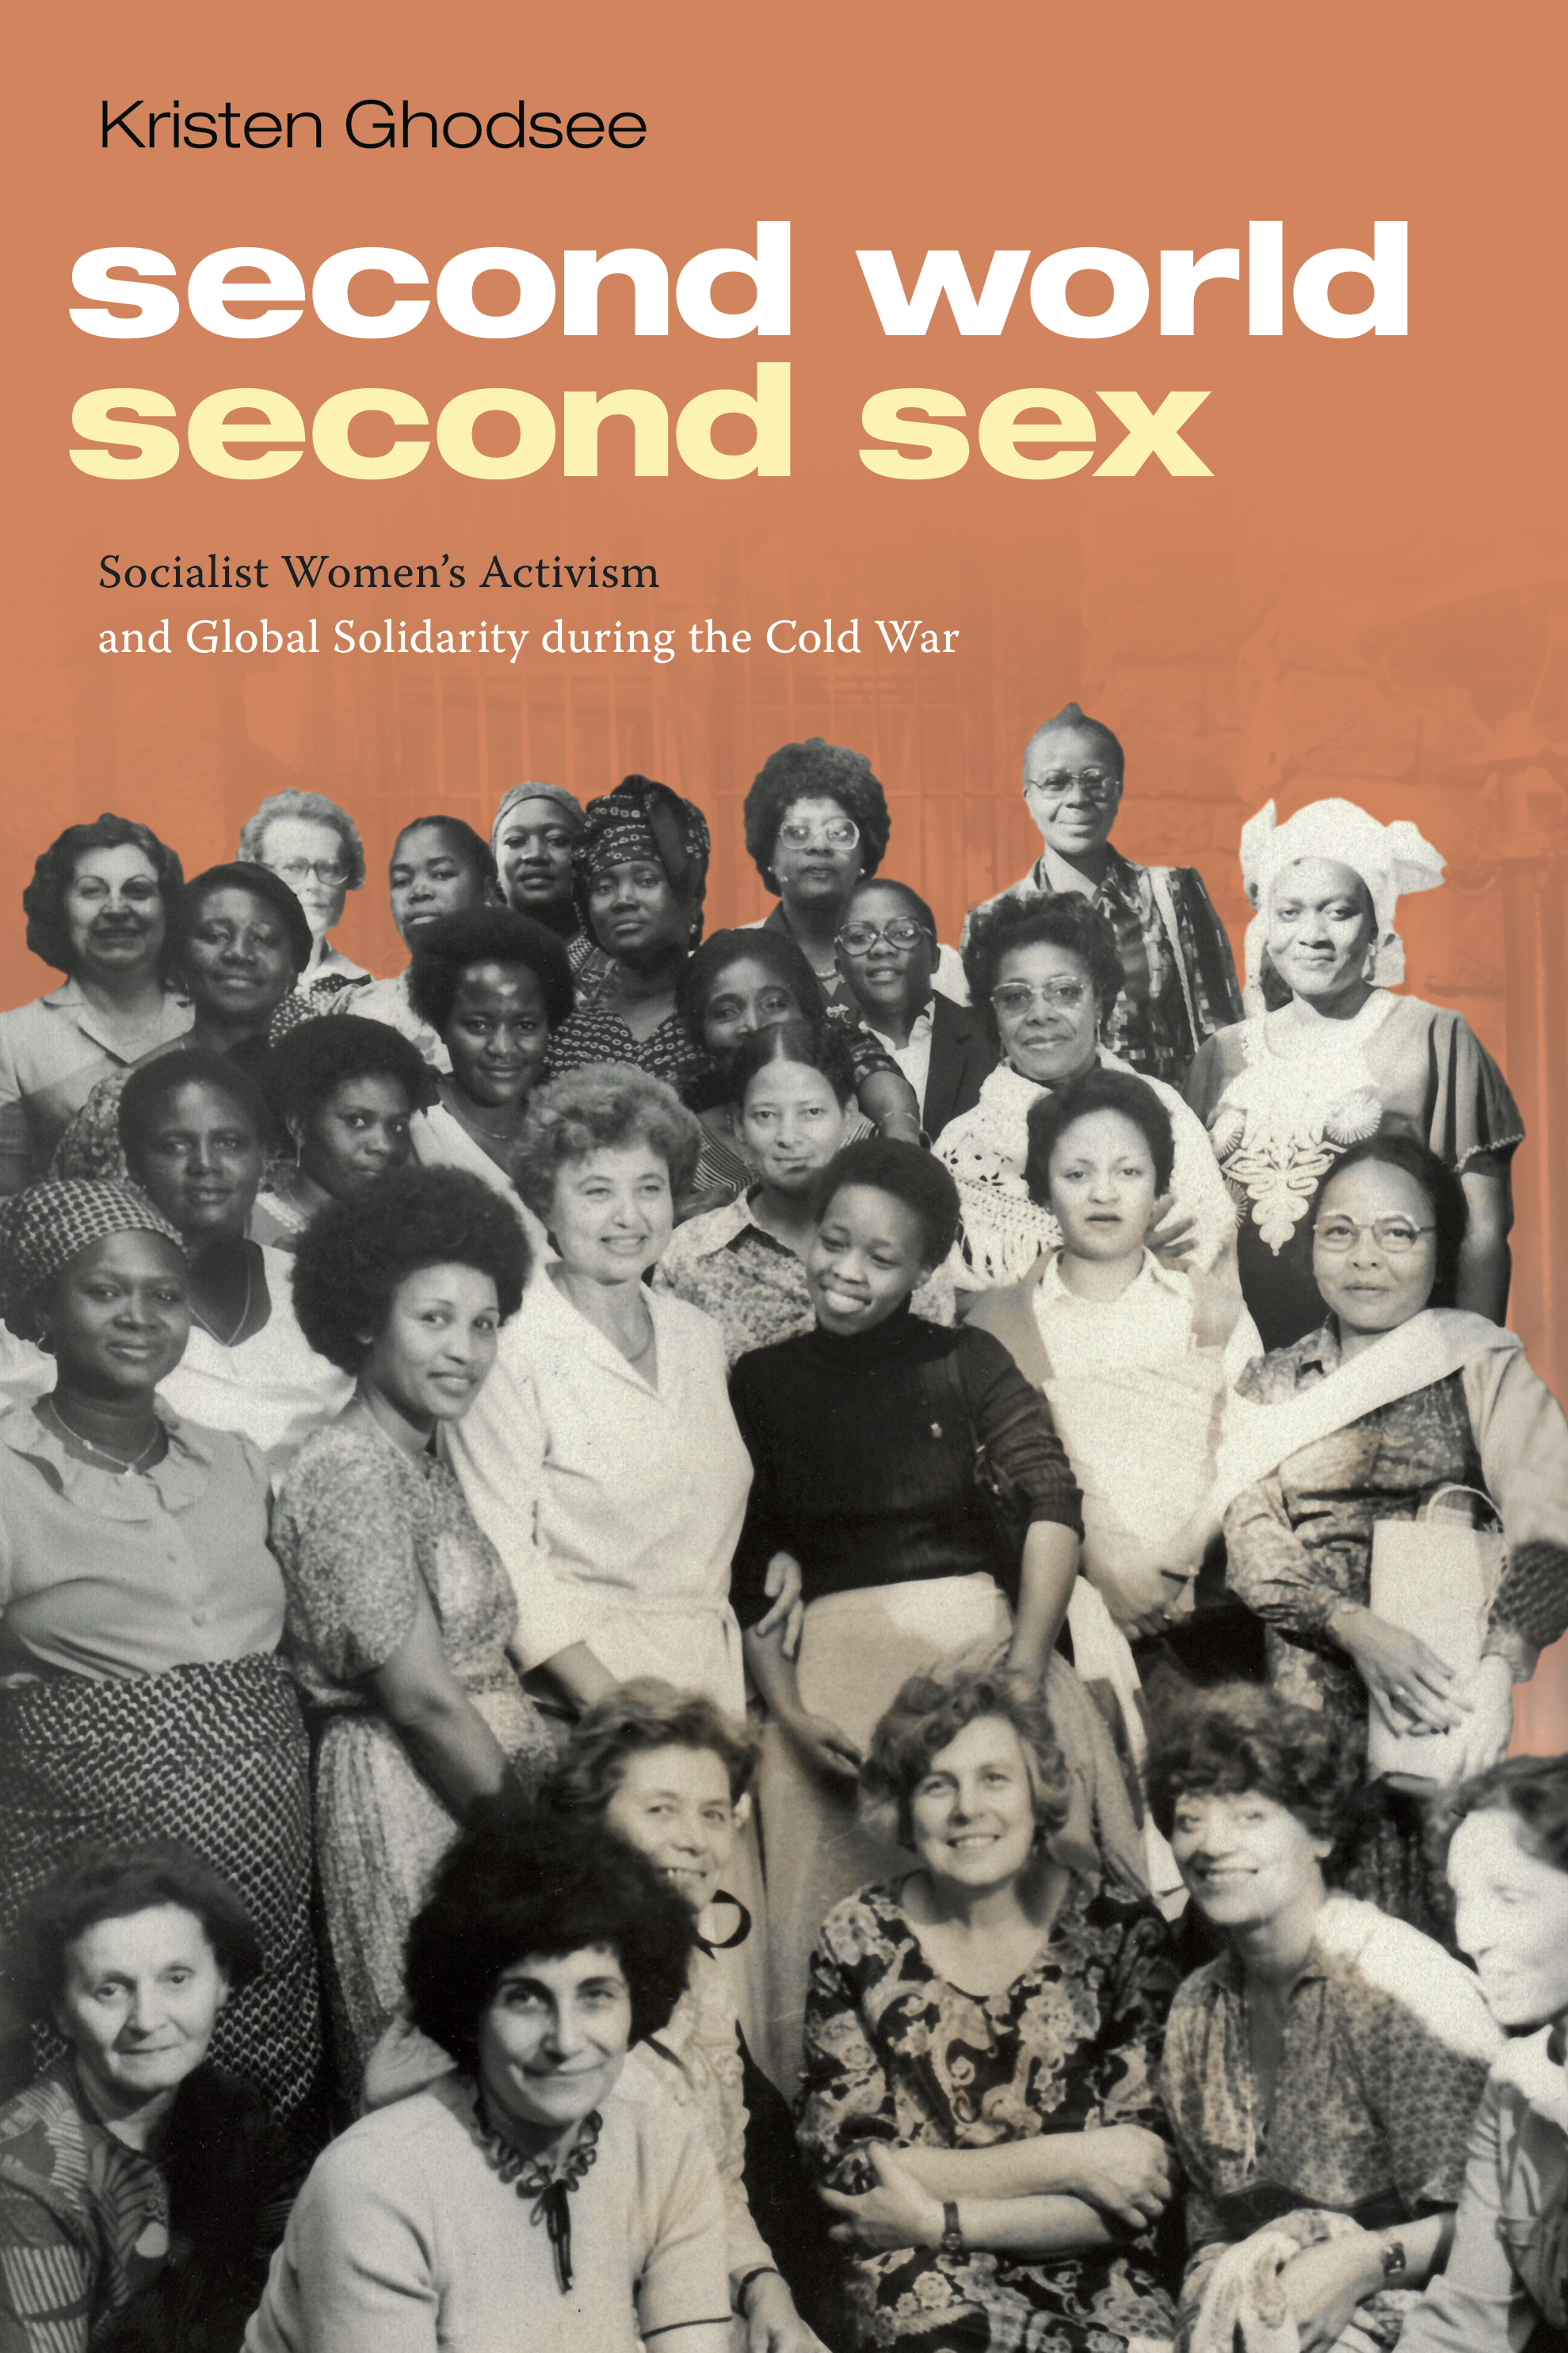 Second World, Second Sex - Duke University Press, 2019